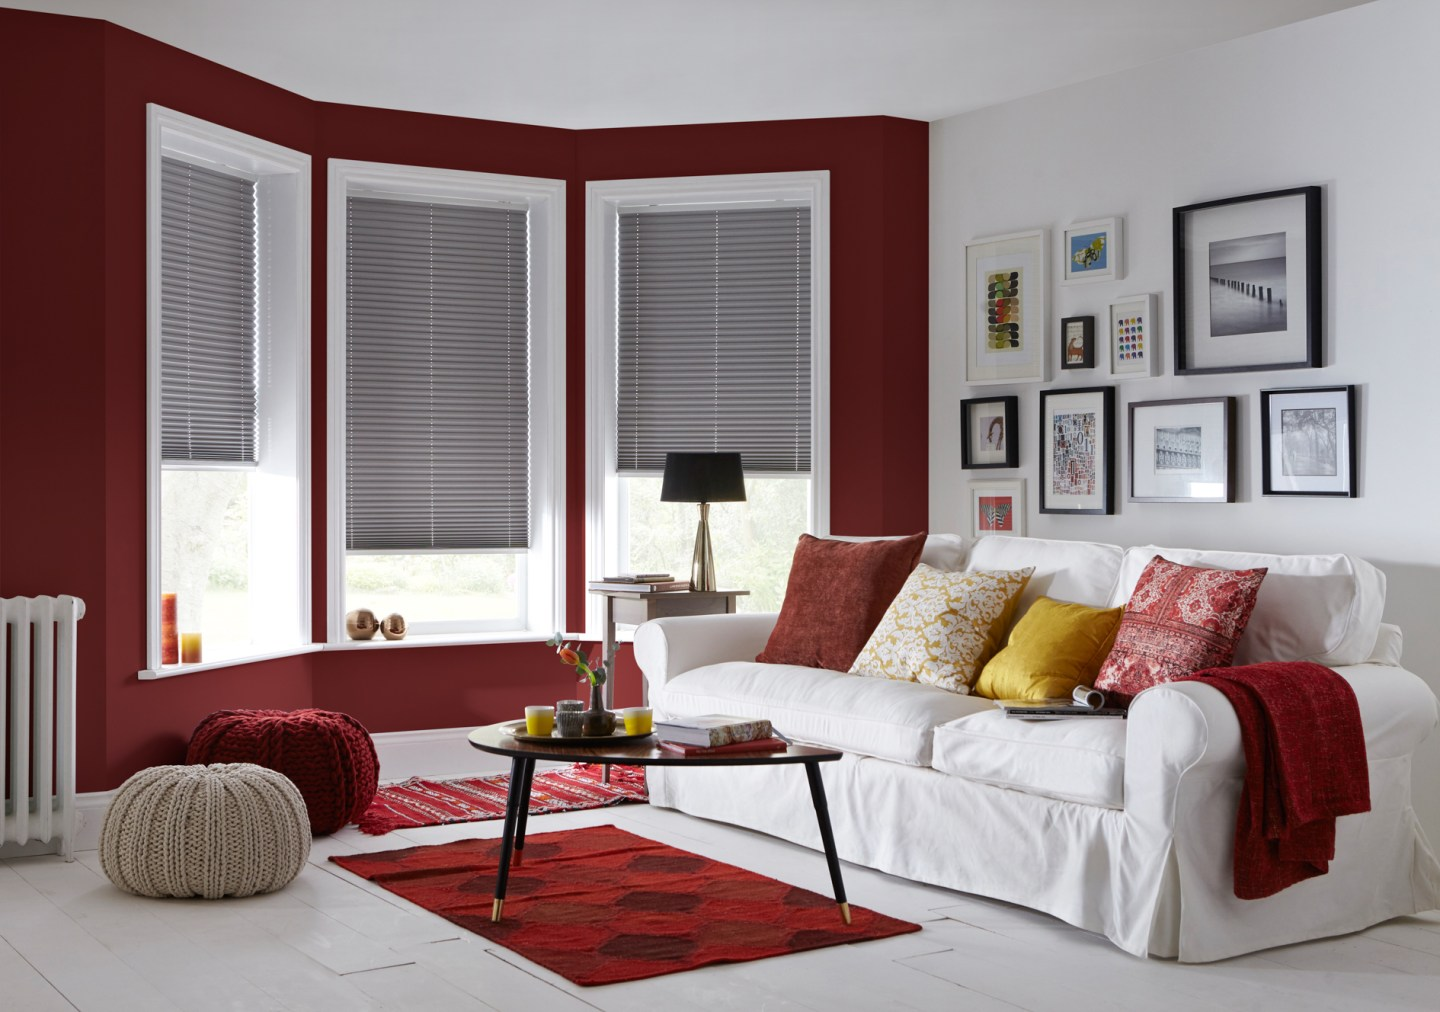 Living-Room-Blinds-Luxury-Grey-Pleated-Blinds-1440x1012 DST Home Decor Inspiration: Crimson and Cream Design Style